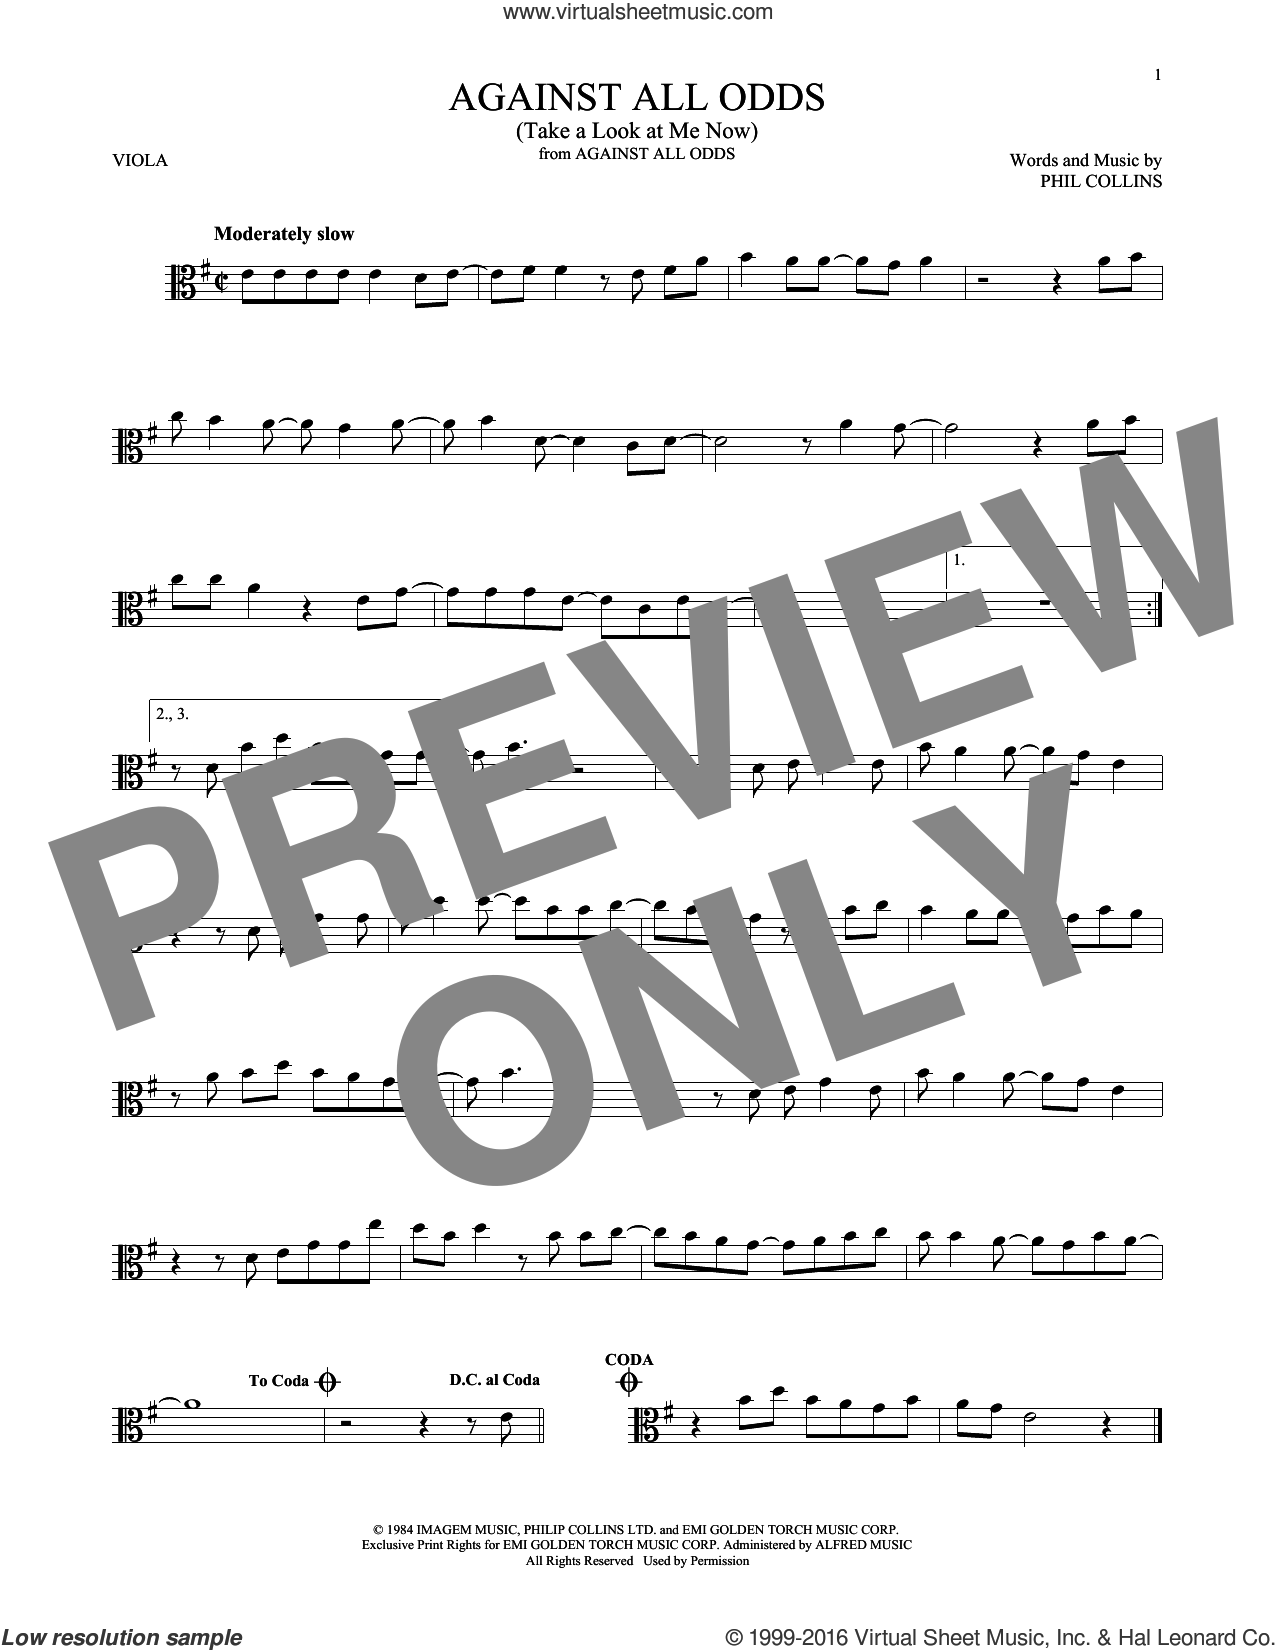 Against All Odds (Take A Look At Me Now) sheet music for viola solo by Phil Collins, intermediate skill level